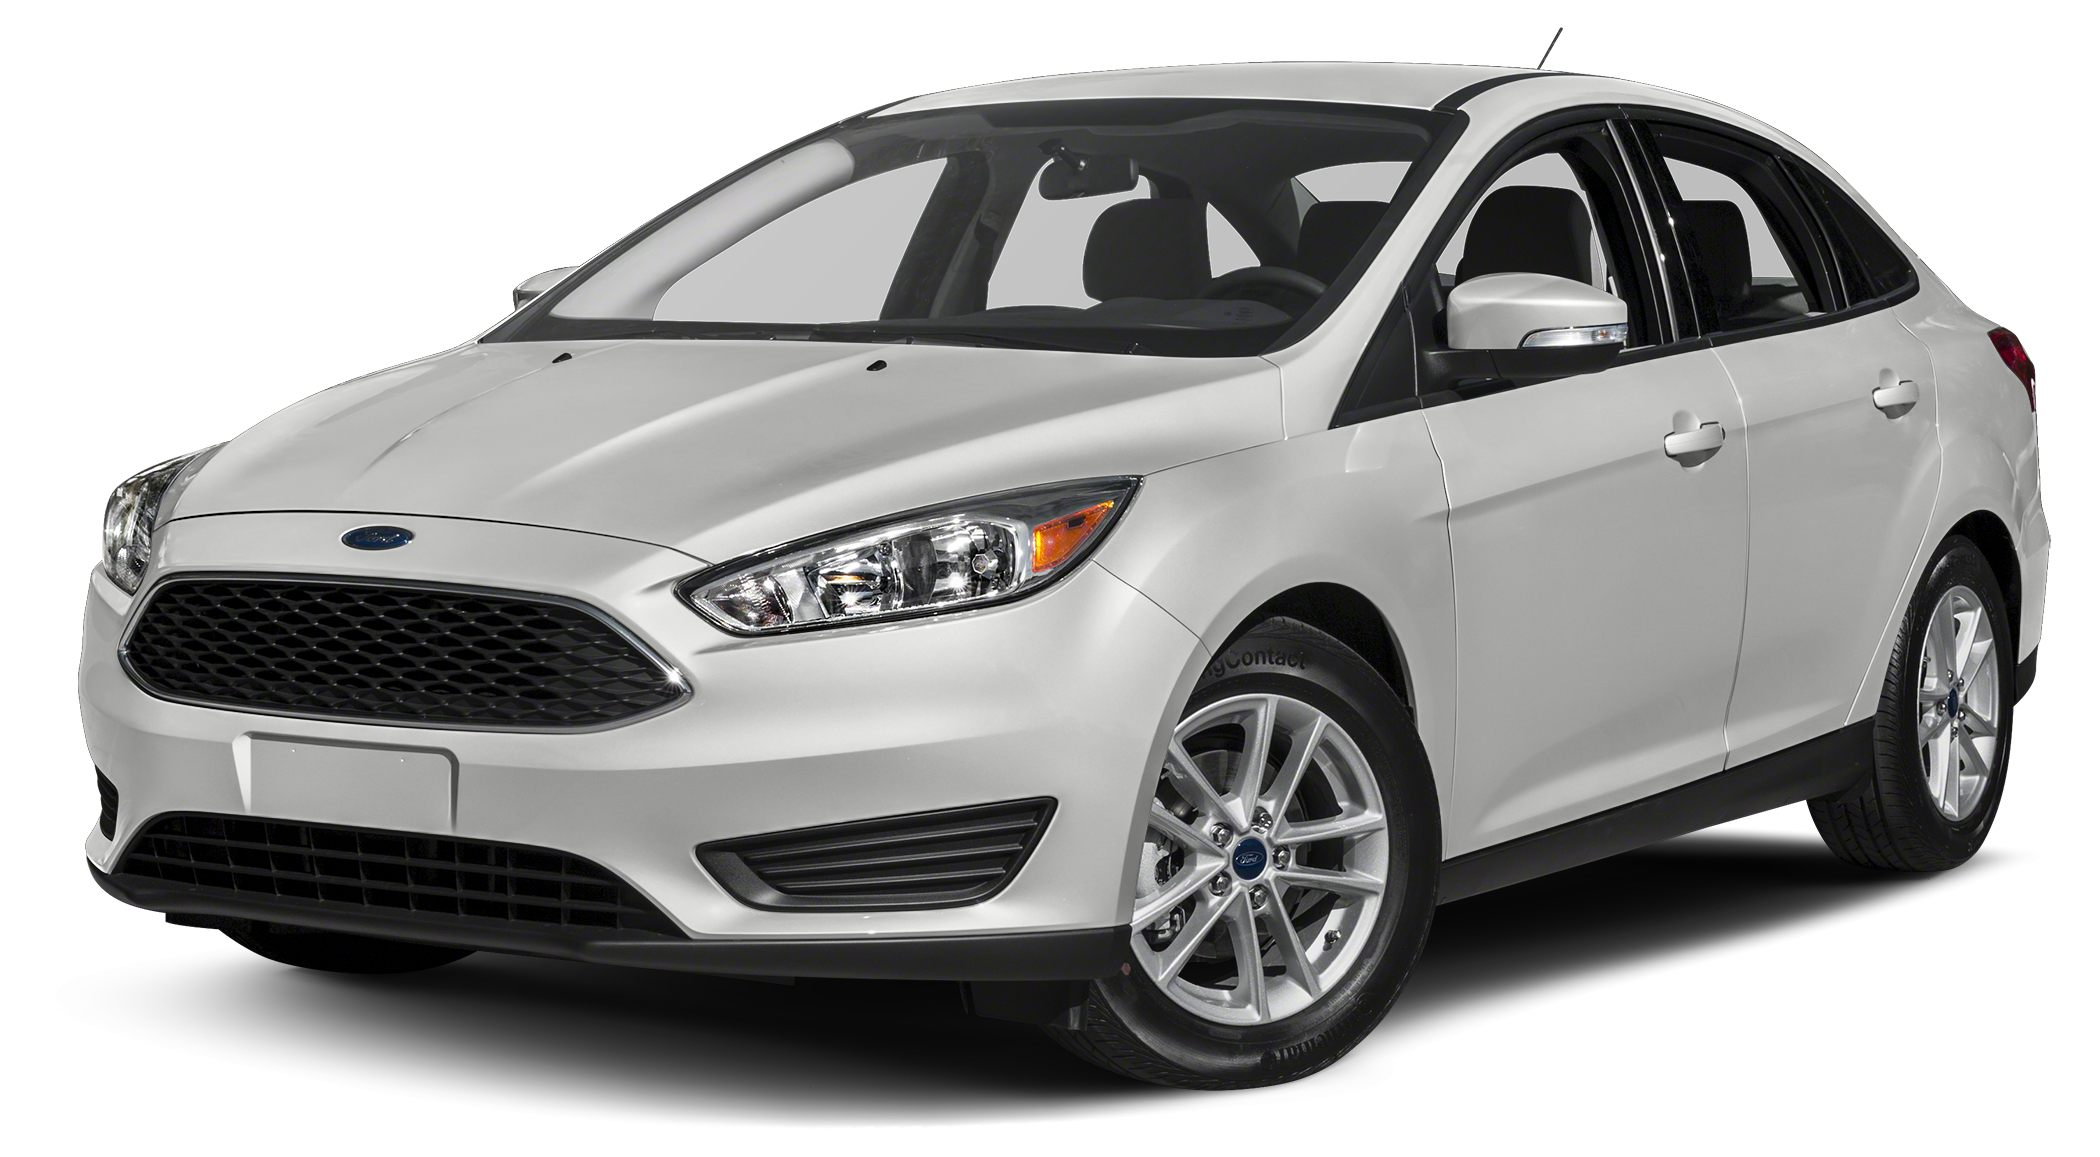 2016 Ford Focus S All prices are after all Ford Factory Rebates and do not include taxes license